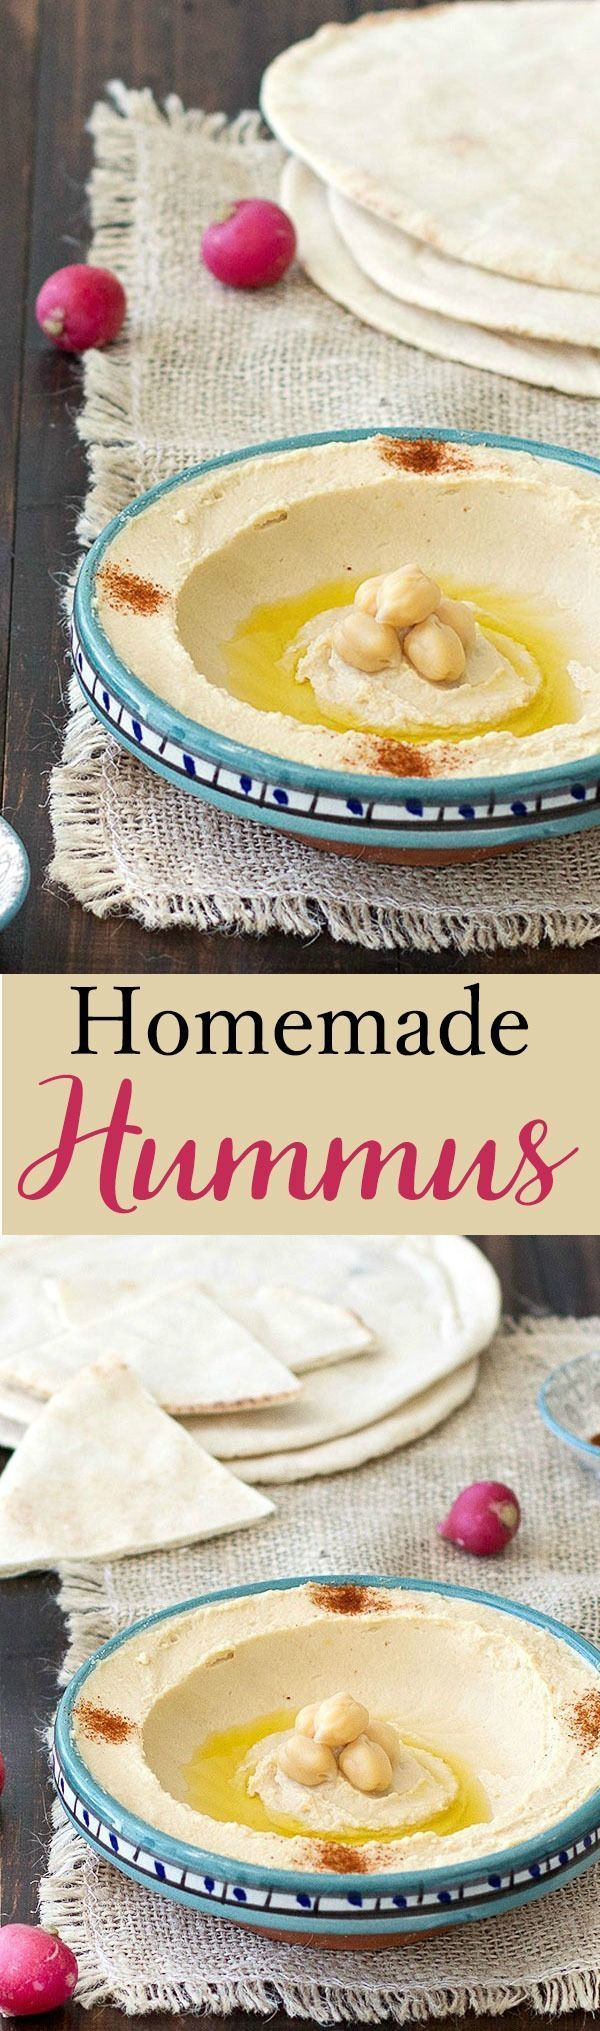 Homemade Lebanese hummus is super easy to make, tasty, healthy and requires just a few simple ingredients. *****